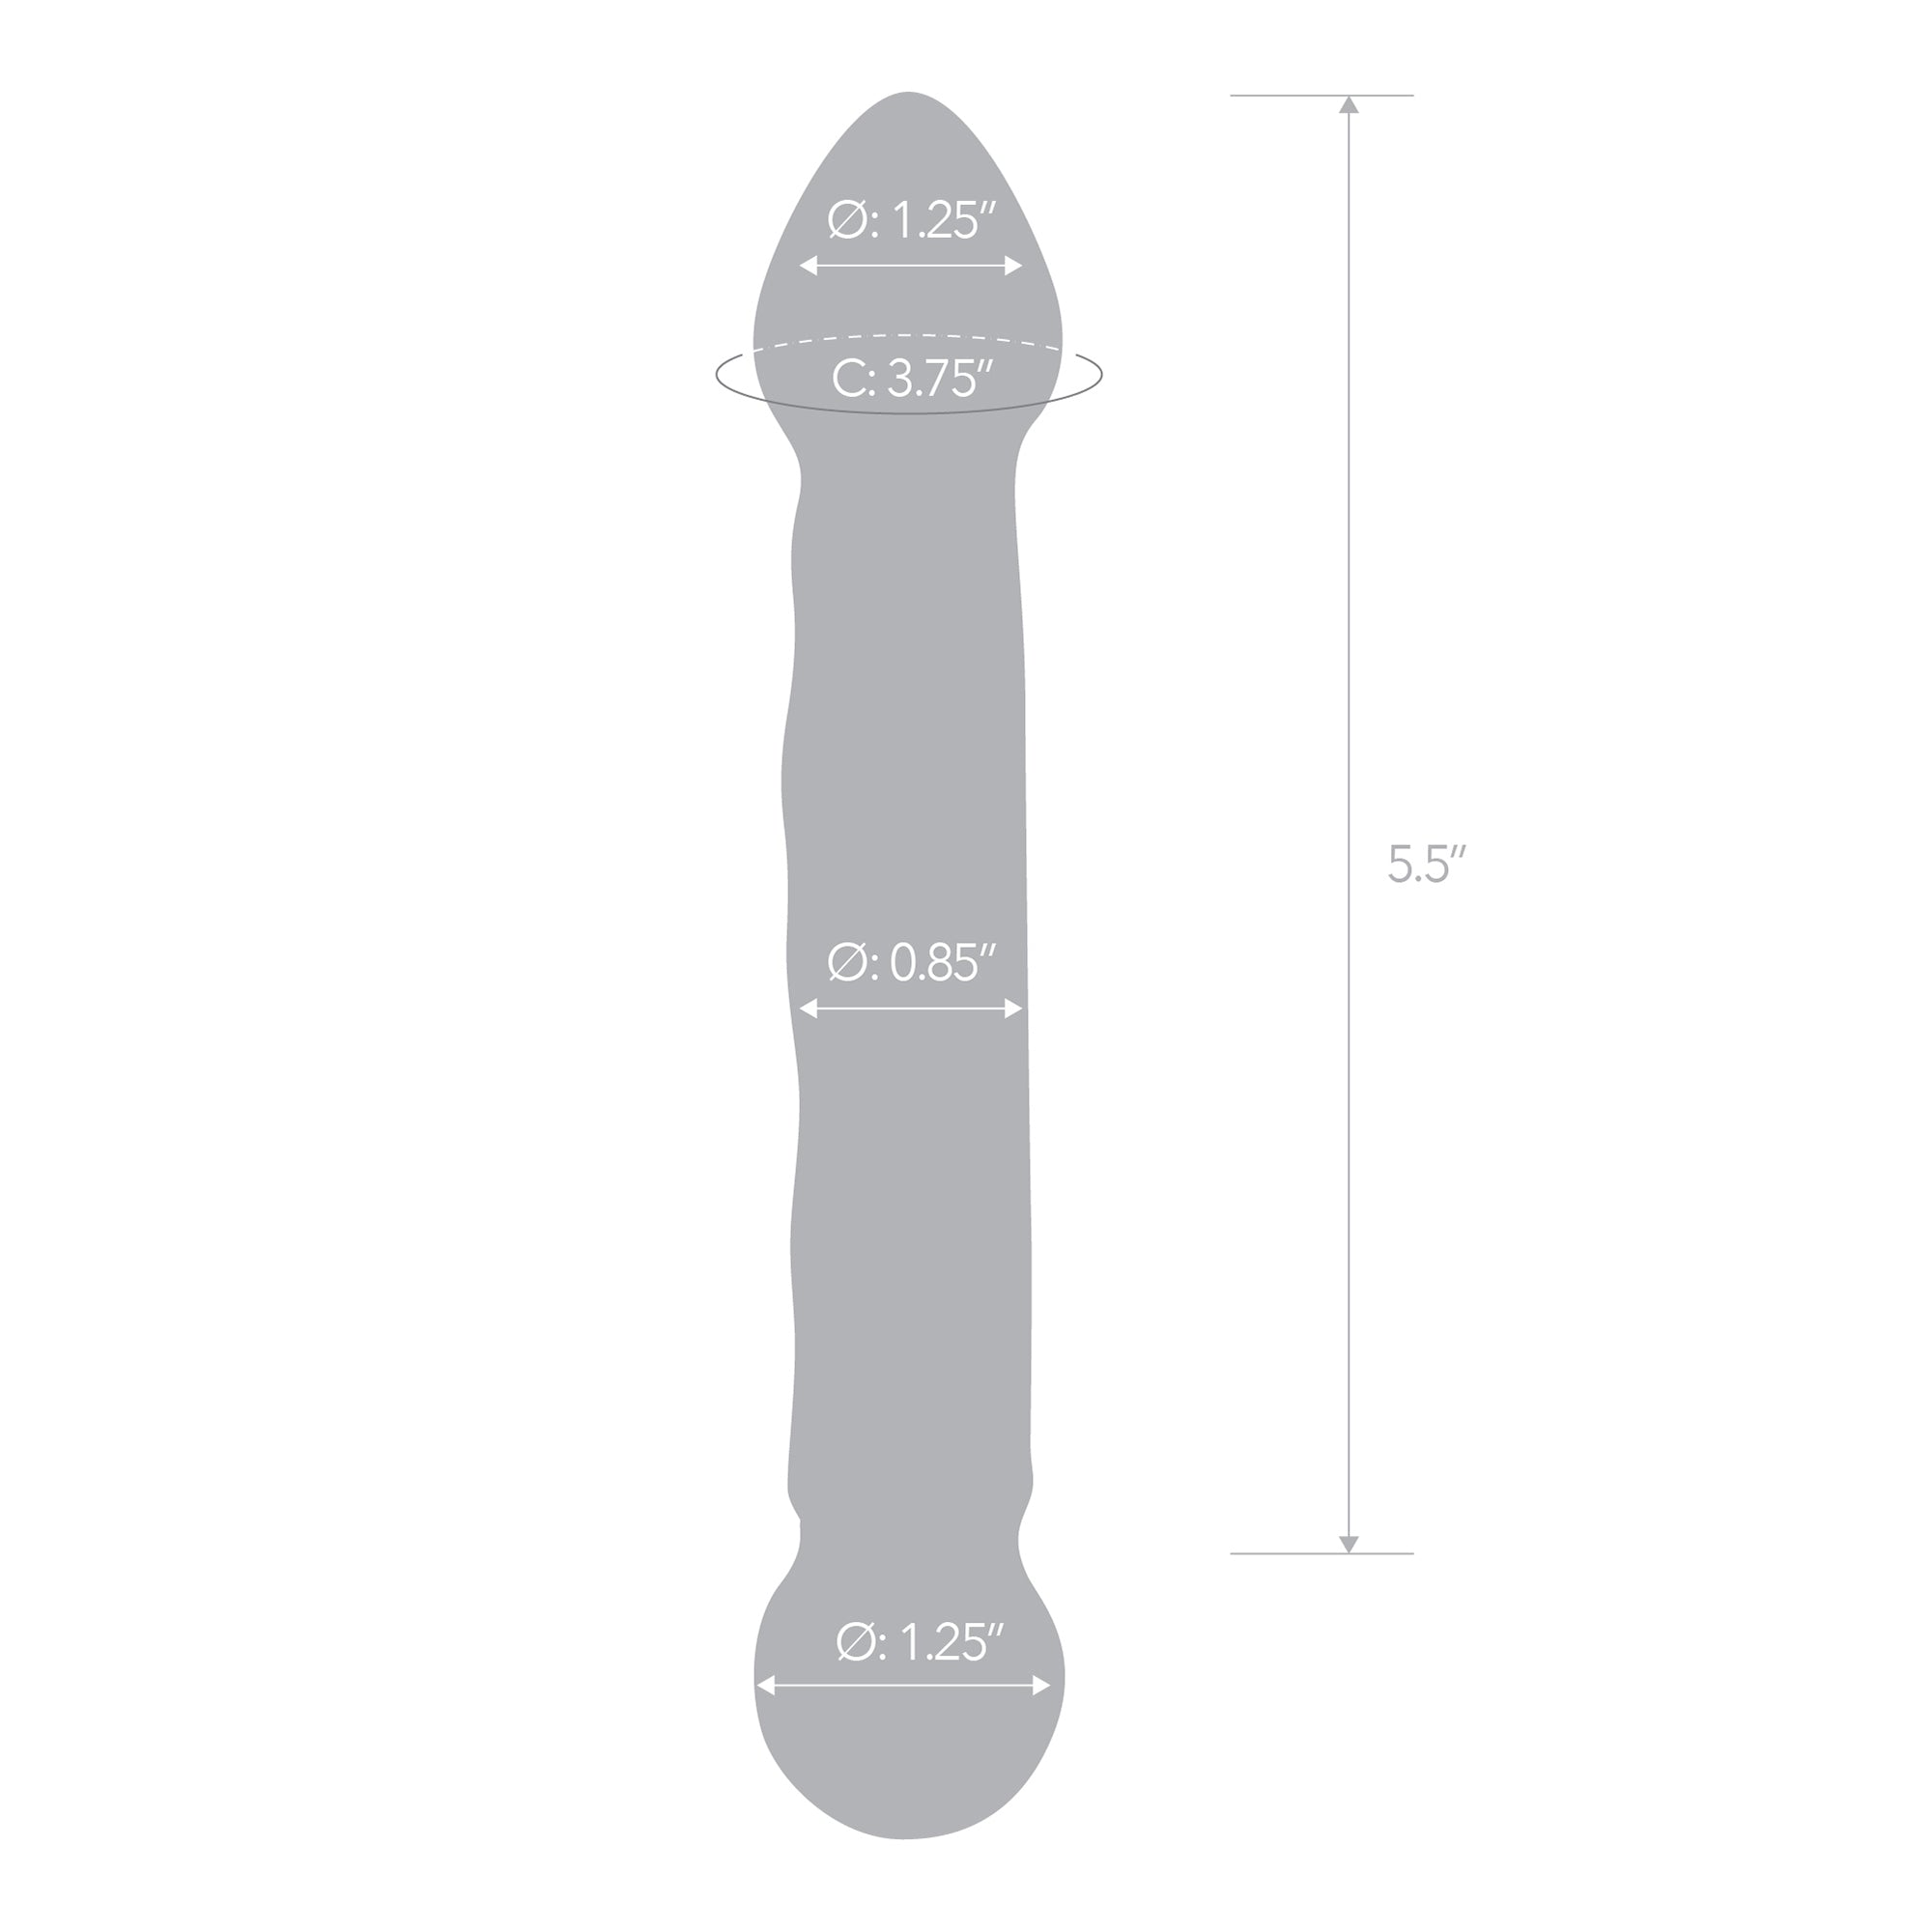 Specifications of the Gläs 6.5 inch Full Tip Textured Glass Dildo